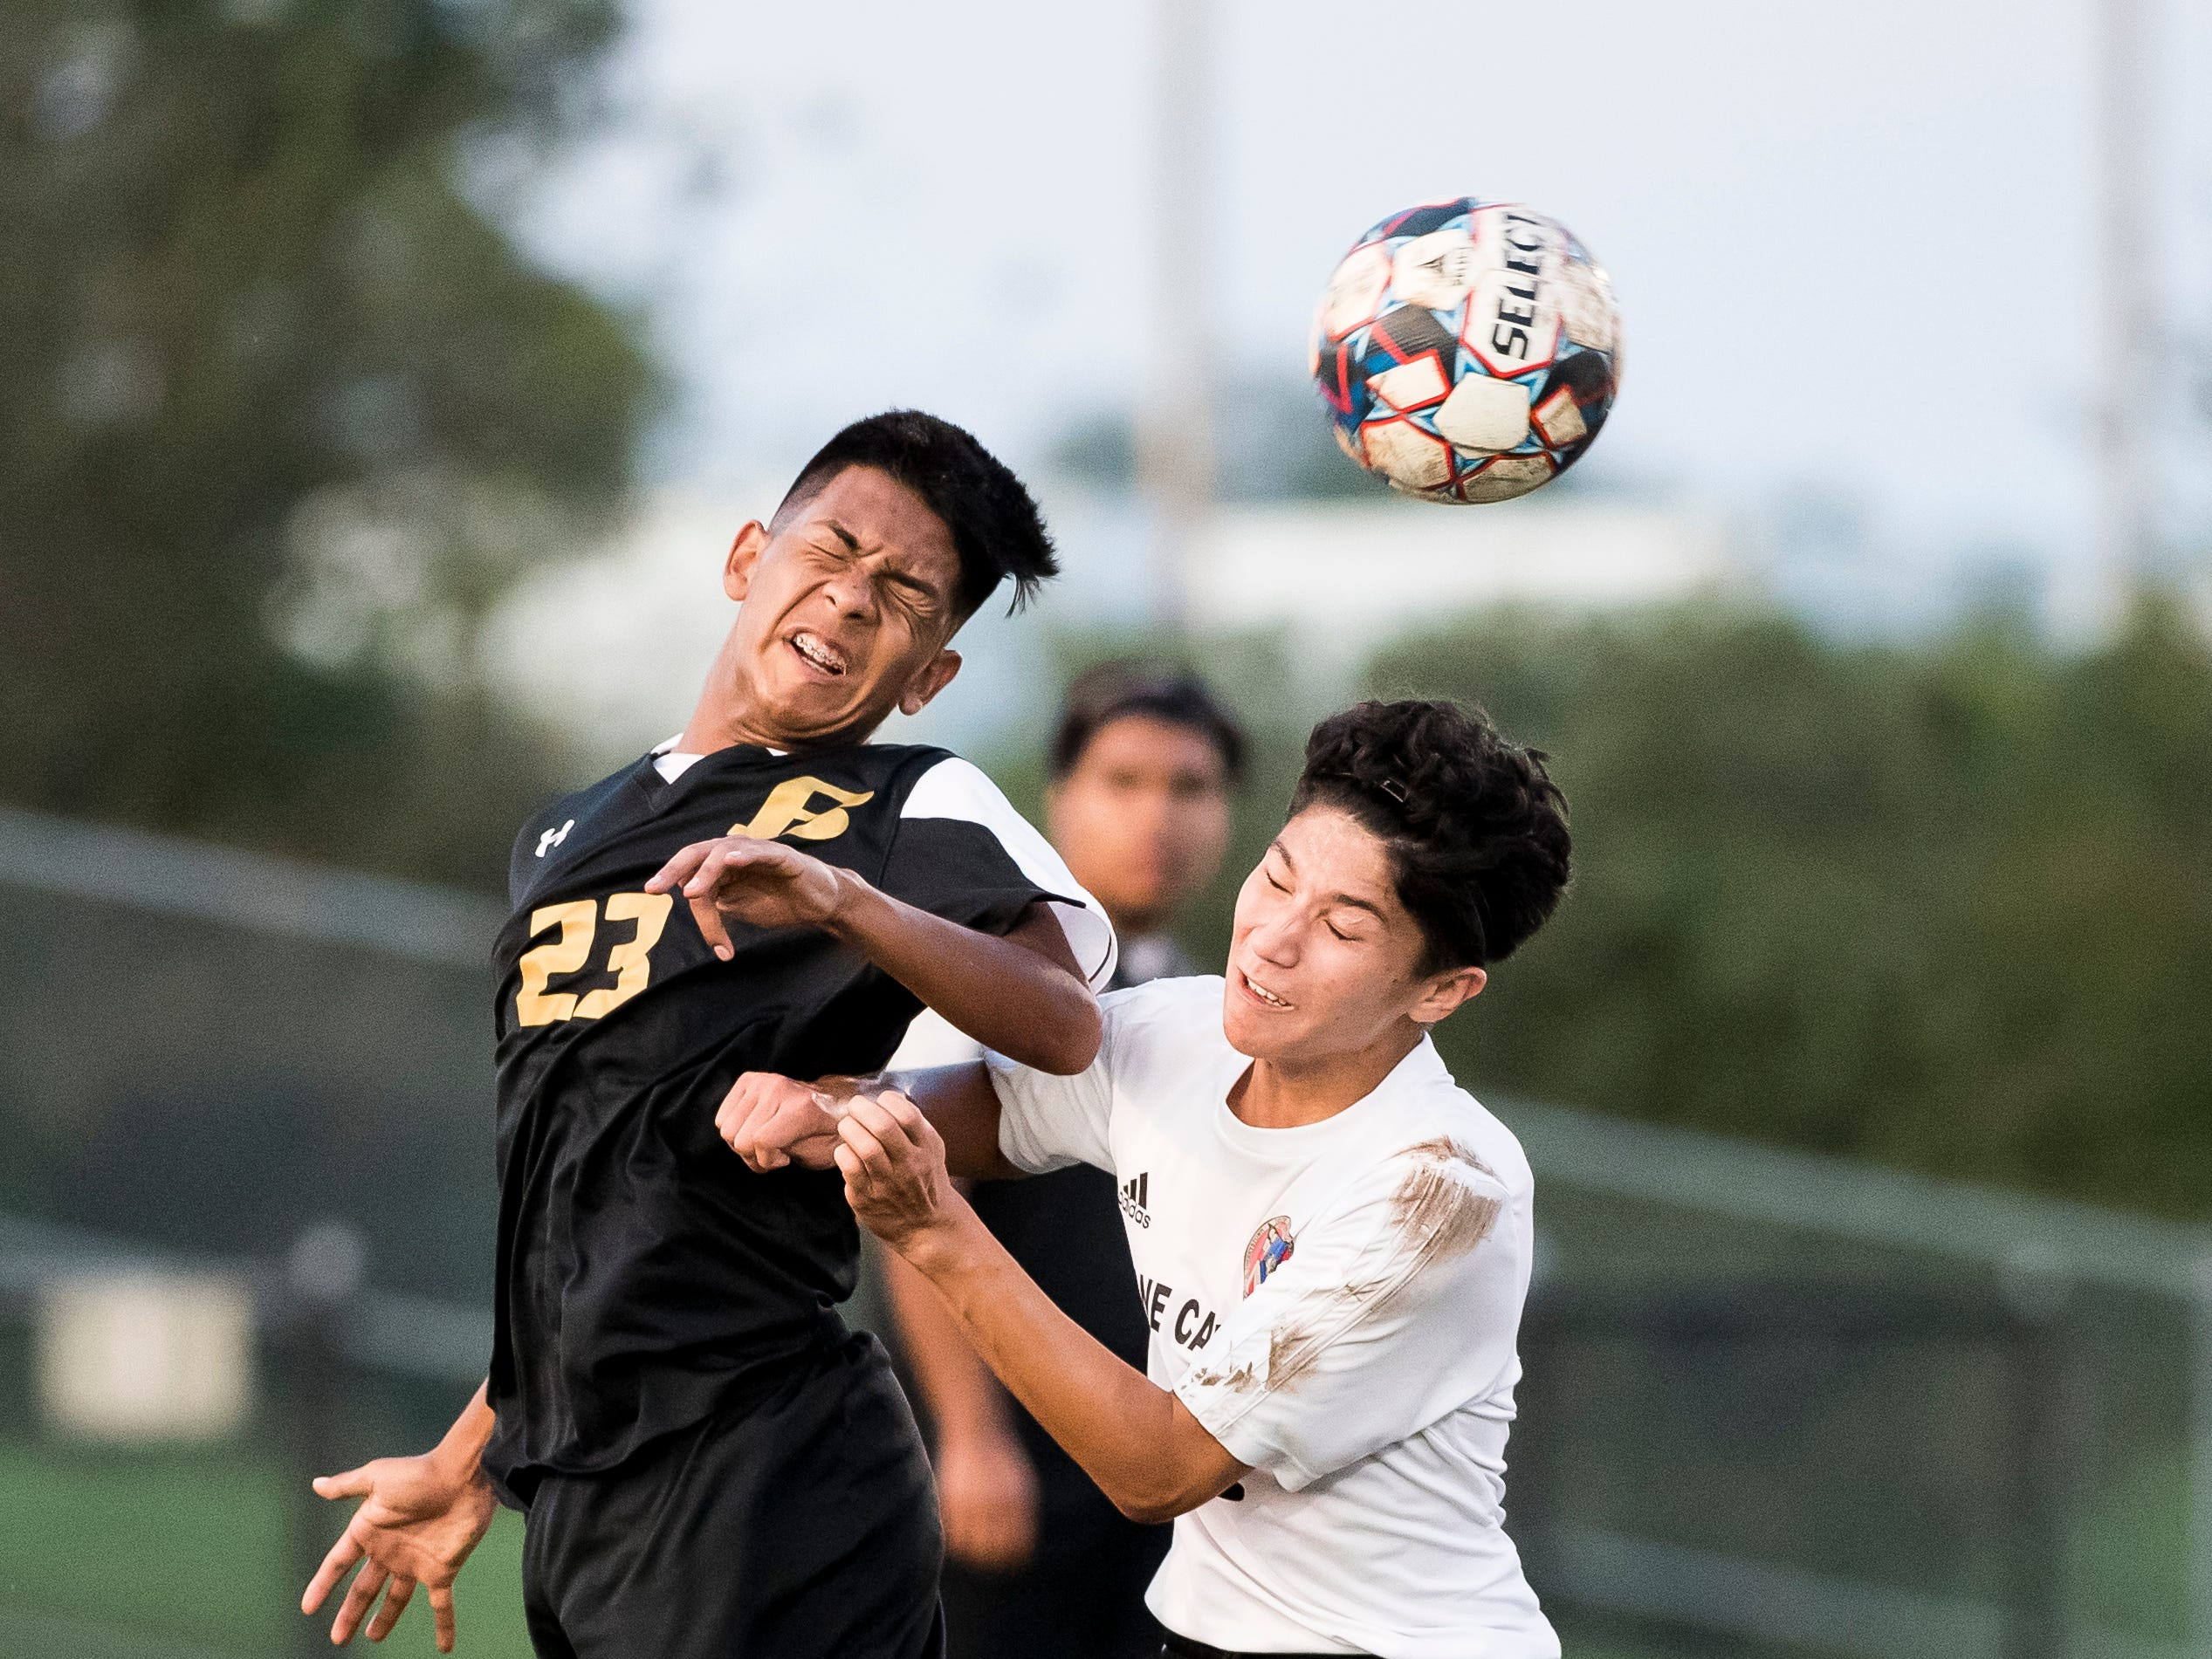 Biglerville's Carlos Castillo (23) hits a header over Delone Catholic's Patrick O'Donnell on Wednesday, October 3, 2018. The Canners won 3-0.